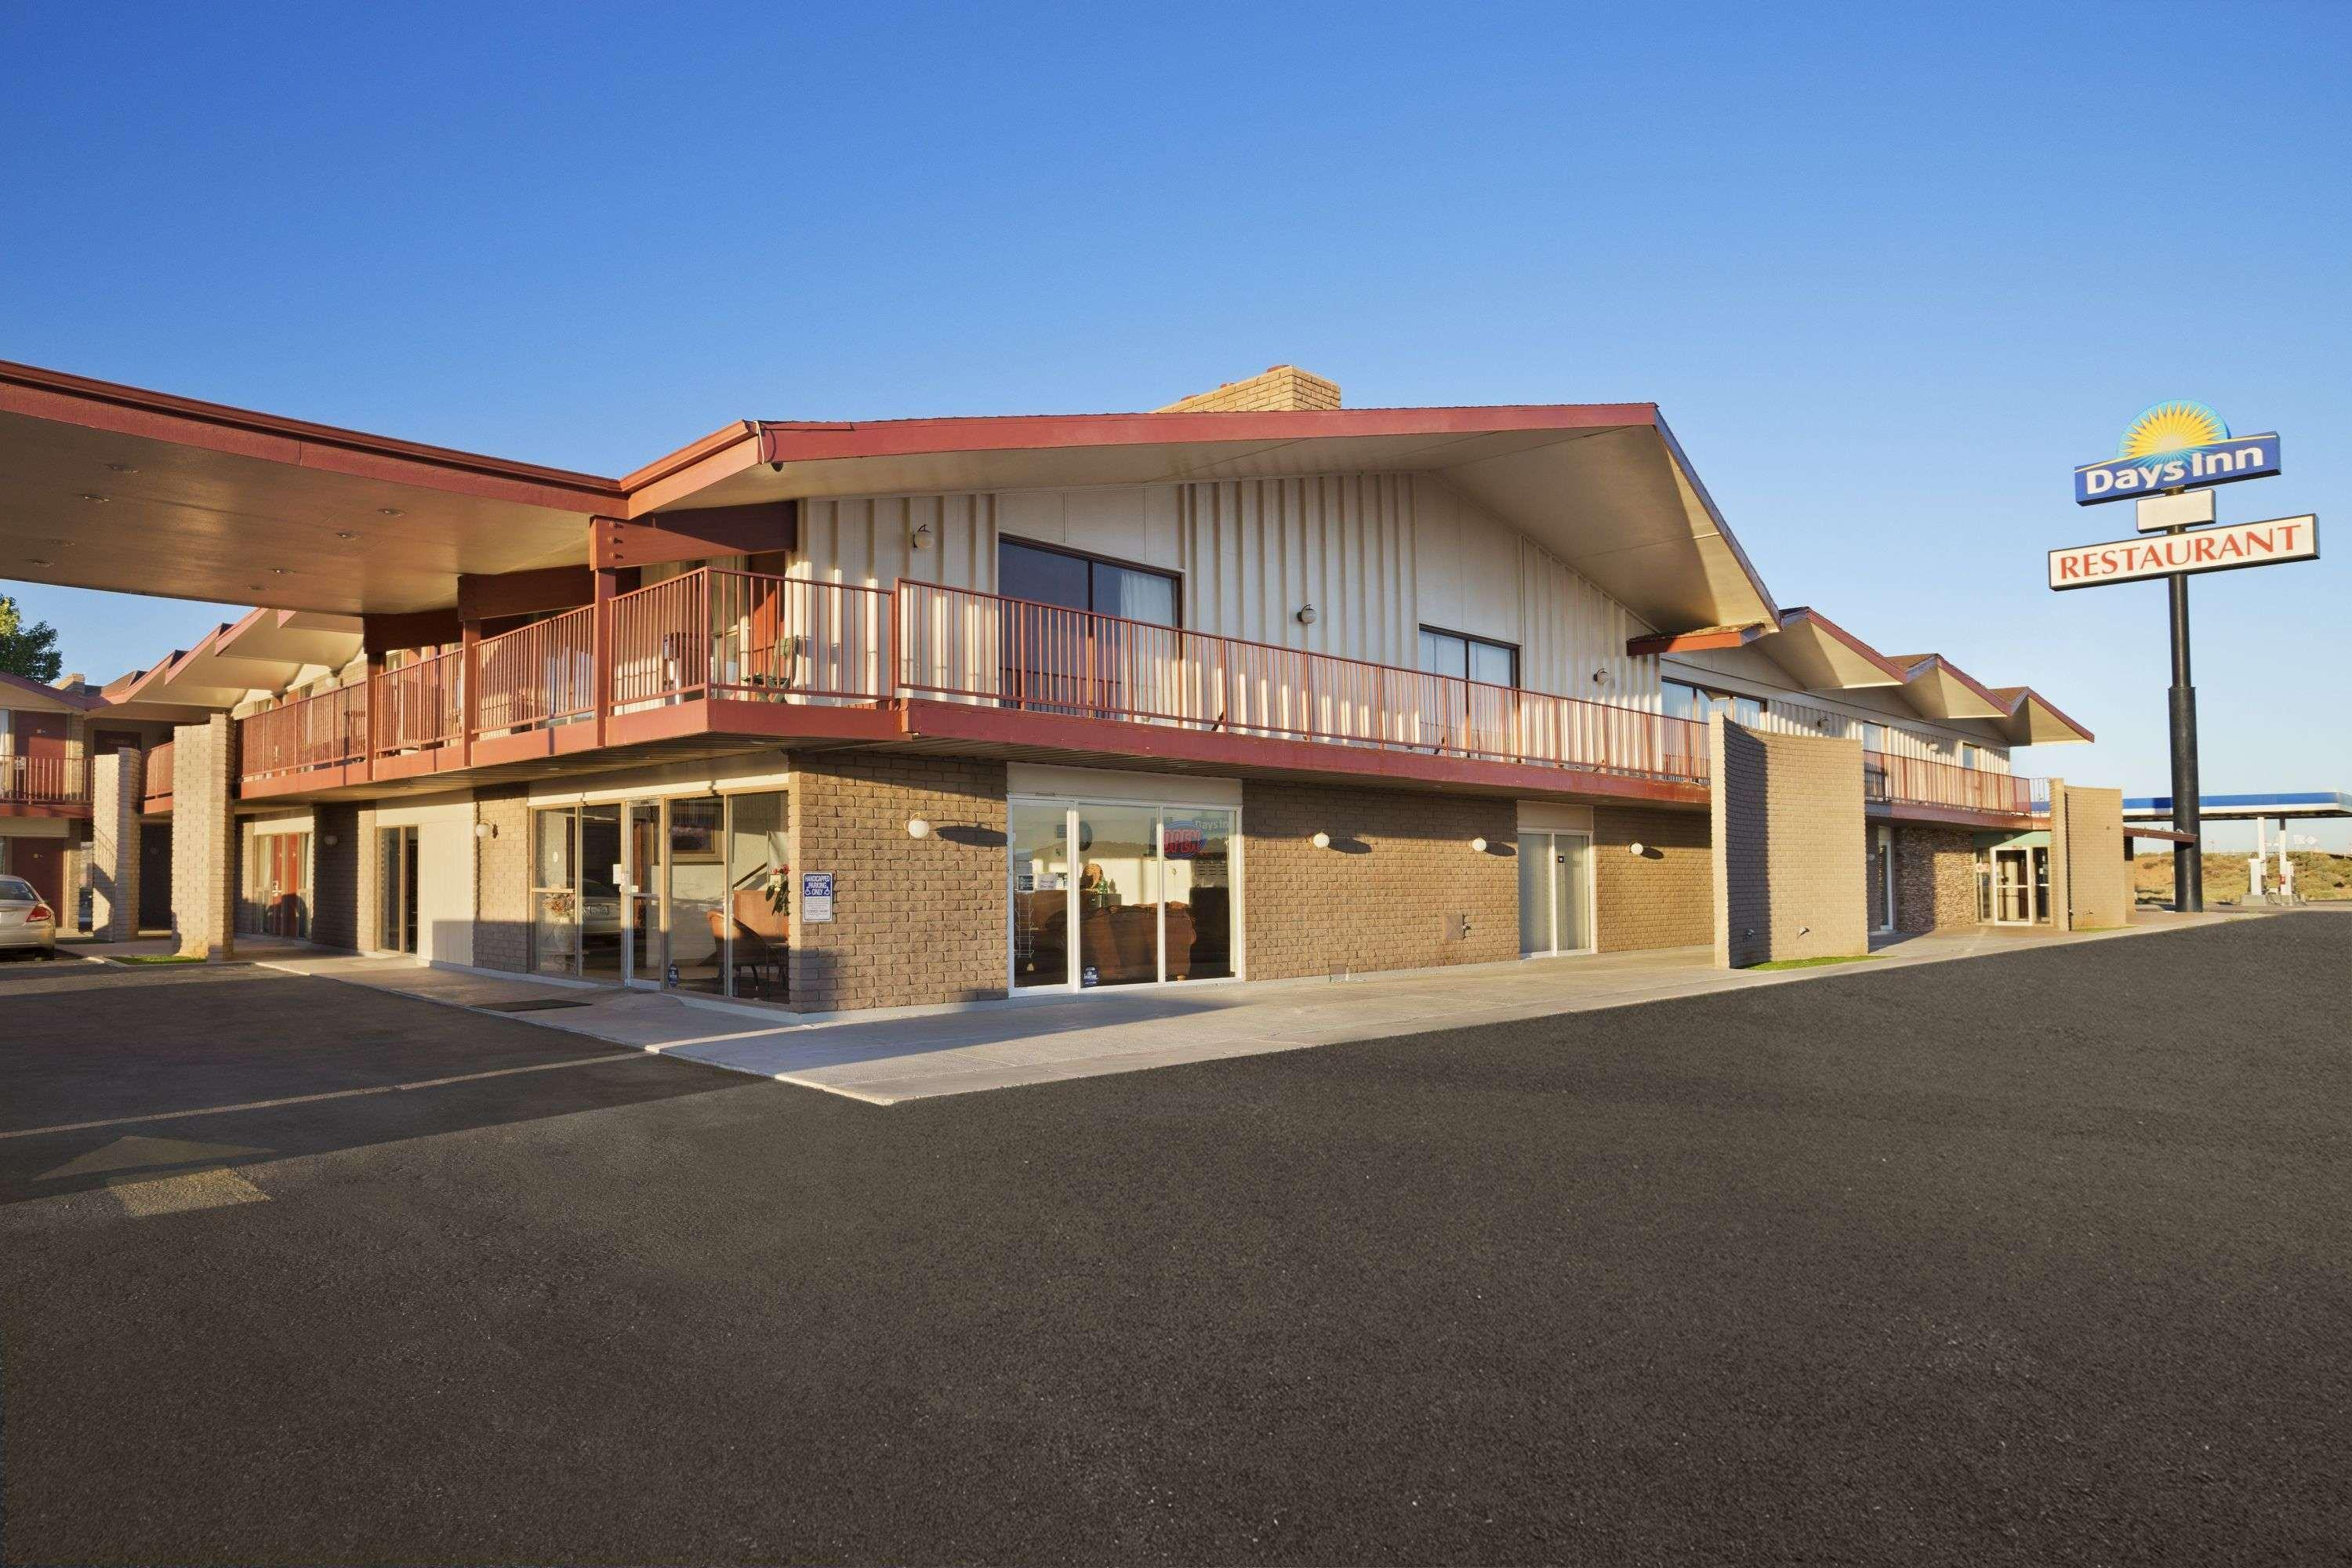 Days Inn by Wyndham Chambers Petrified Fores, Apache